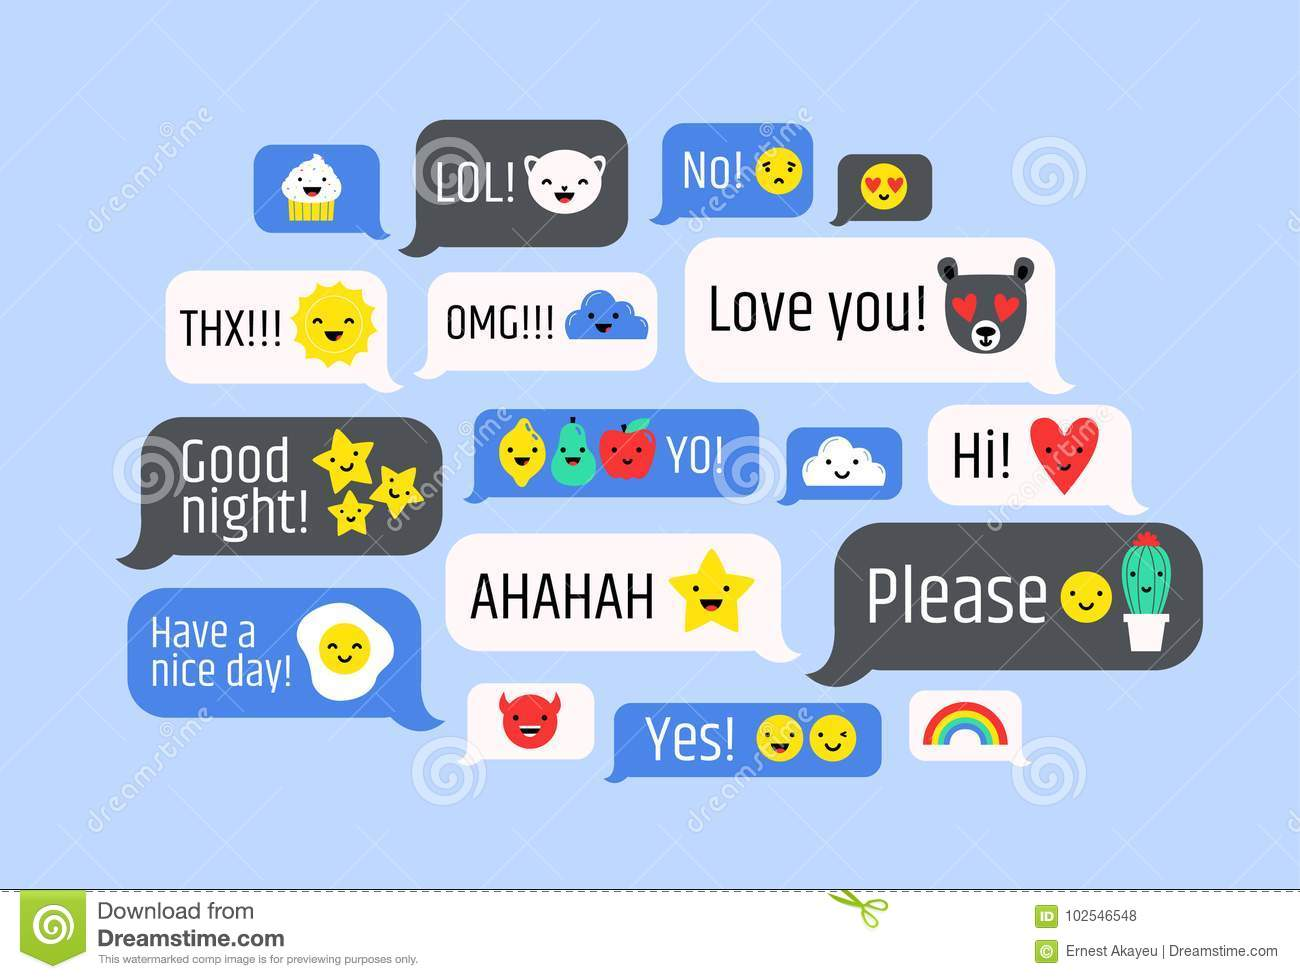 Cloud Of Messages With Cute Emoji Speech Bubbles With Text And